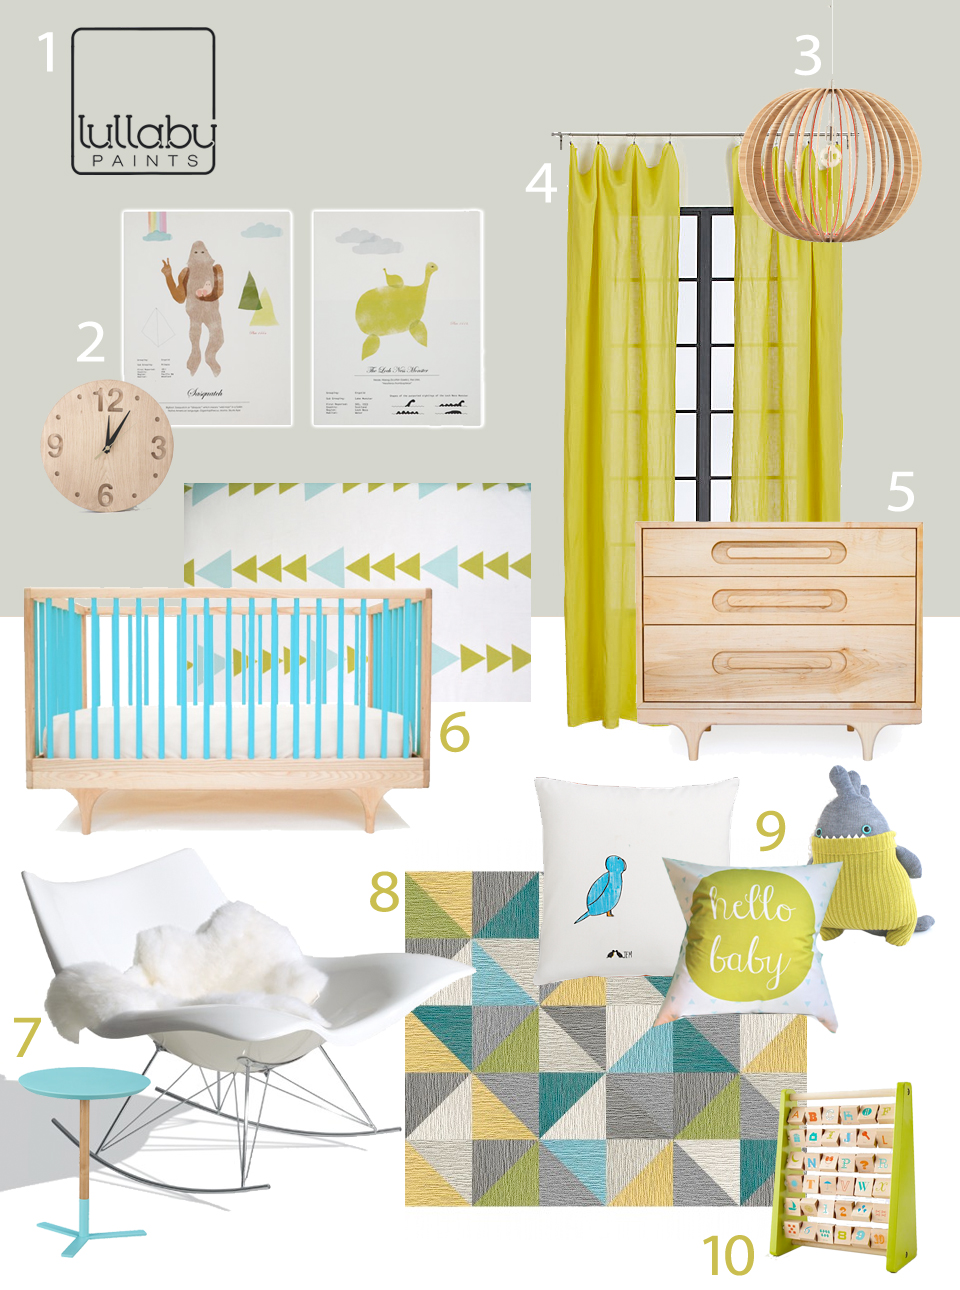 Gender neutral nurseries with bright colors lullaby paints for Bright neutral paint colors